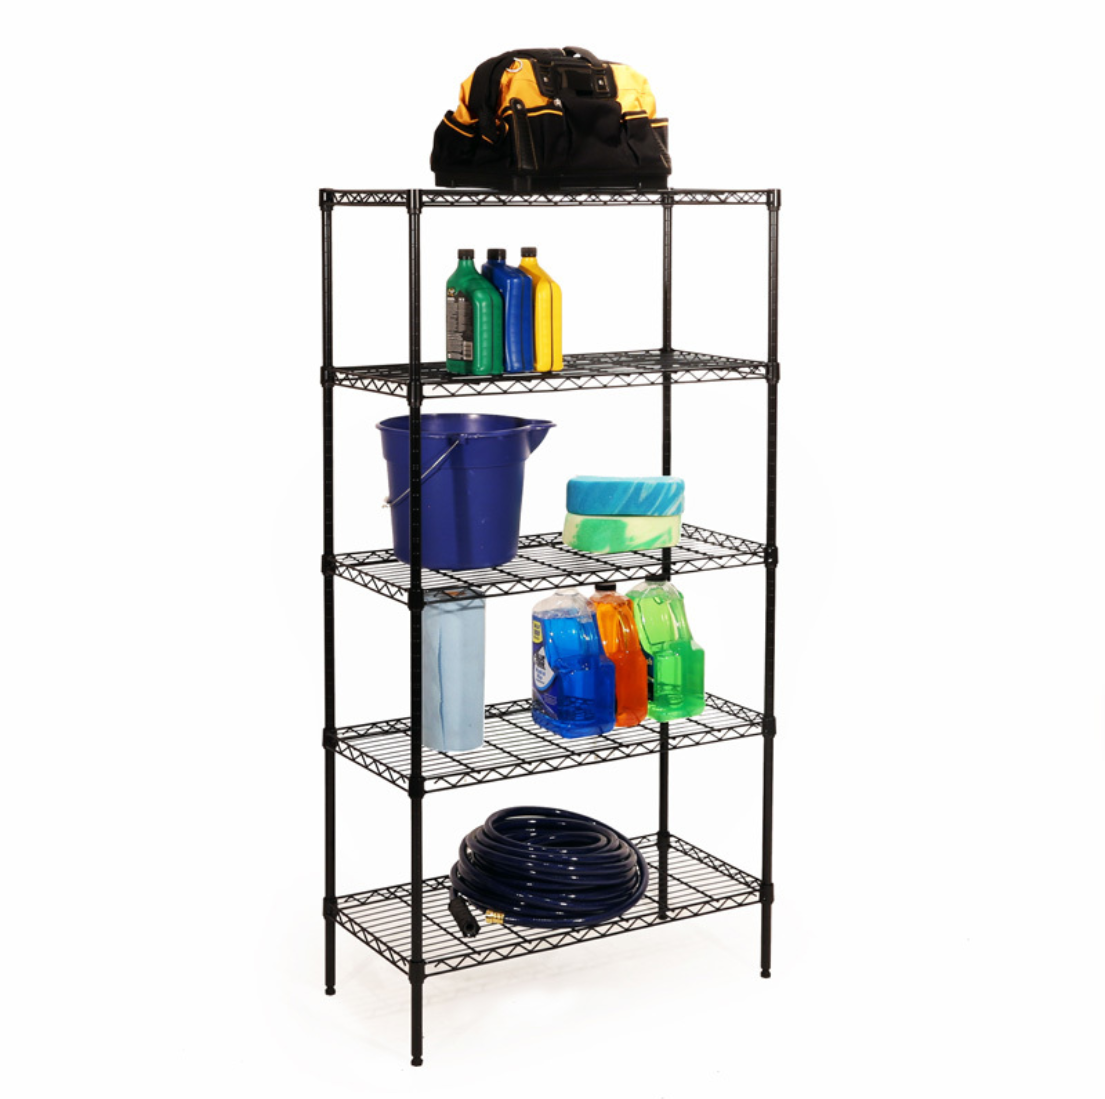 Seville Classics 5-Tier Black Epoxy Steel Wire Shelving, 30″ W x 14″ D x 60″ H Home & Garden